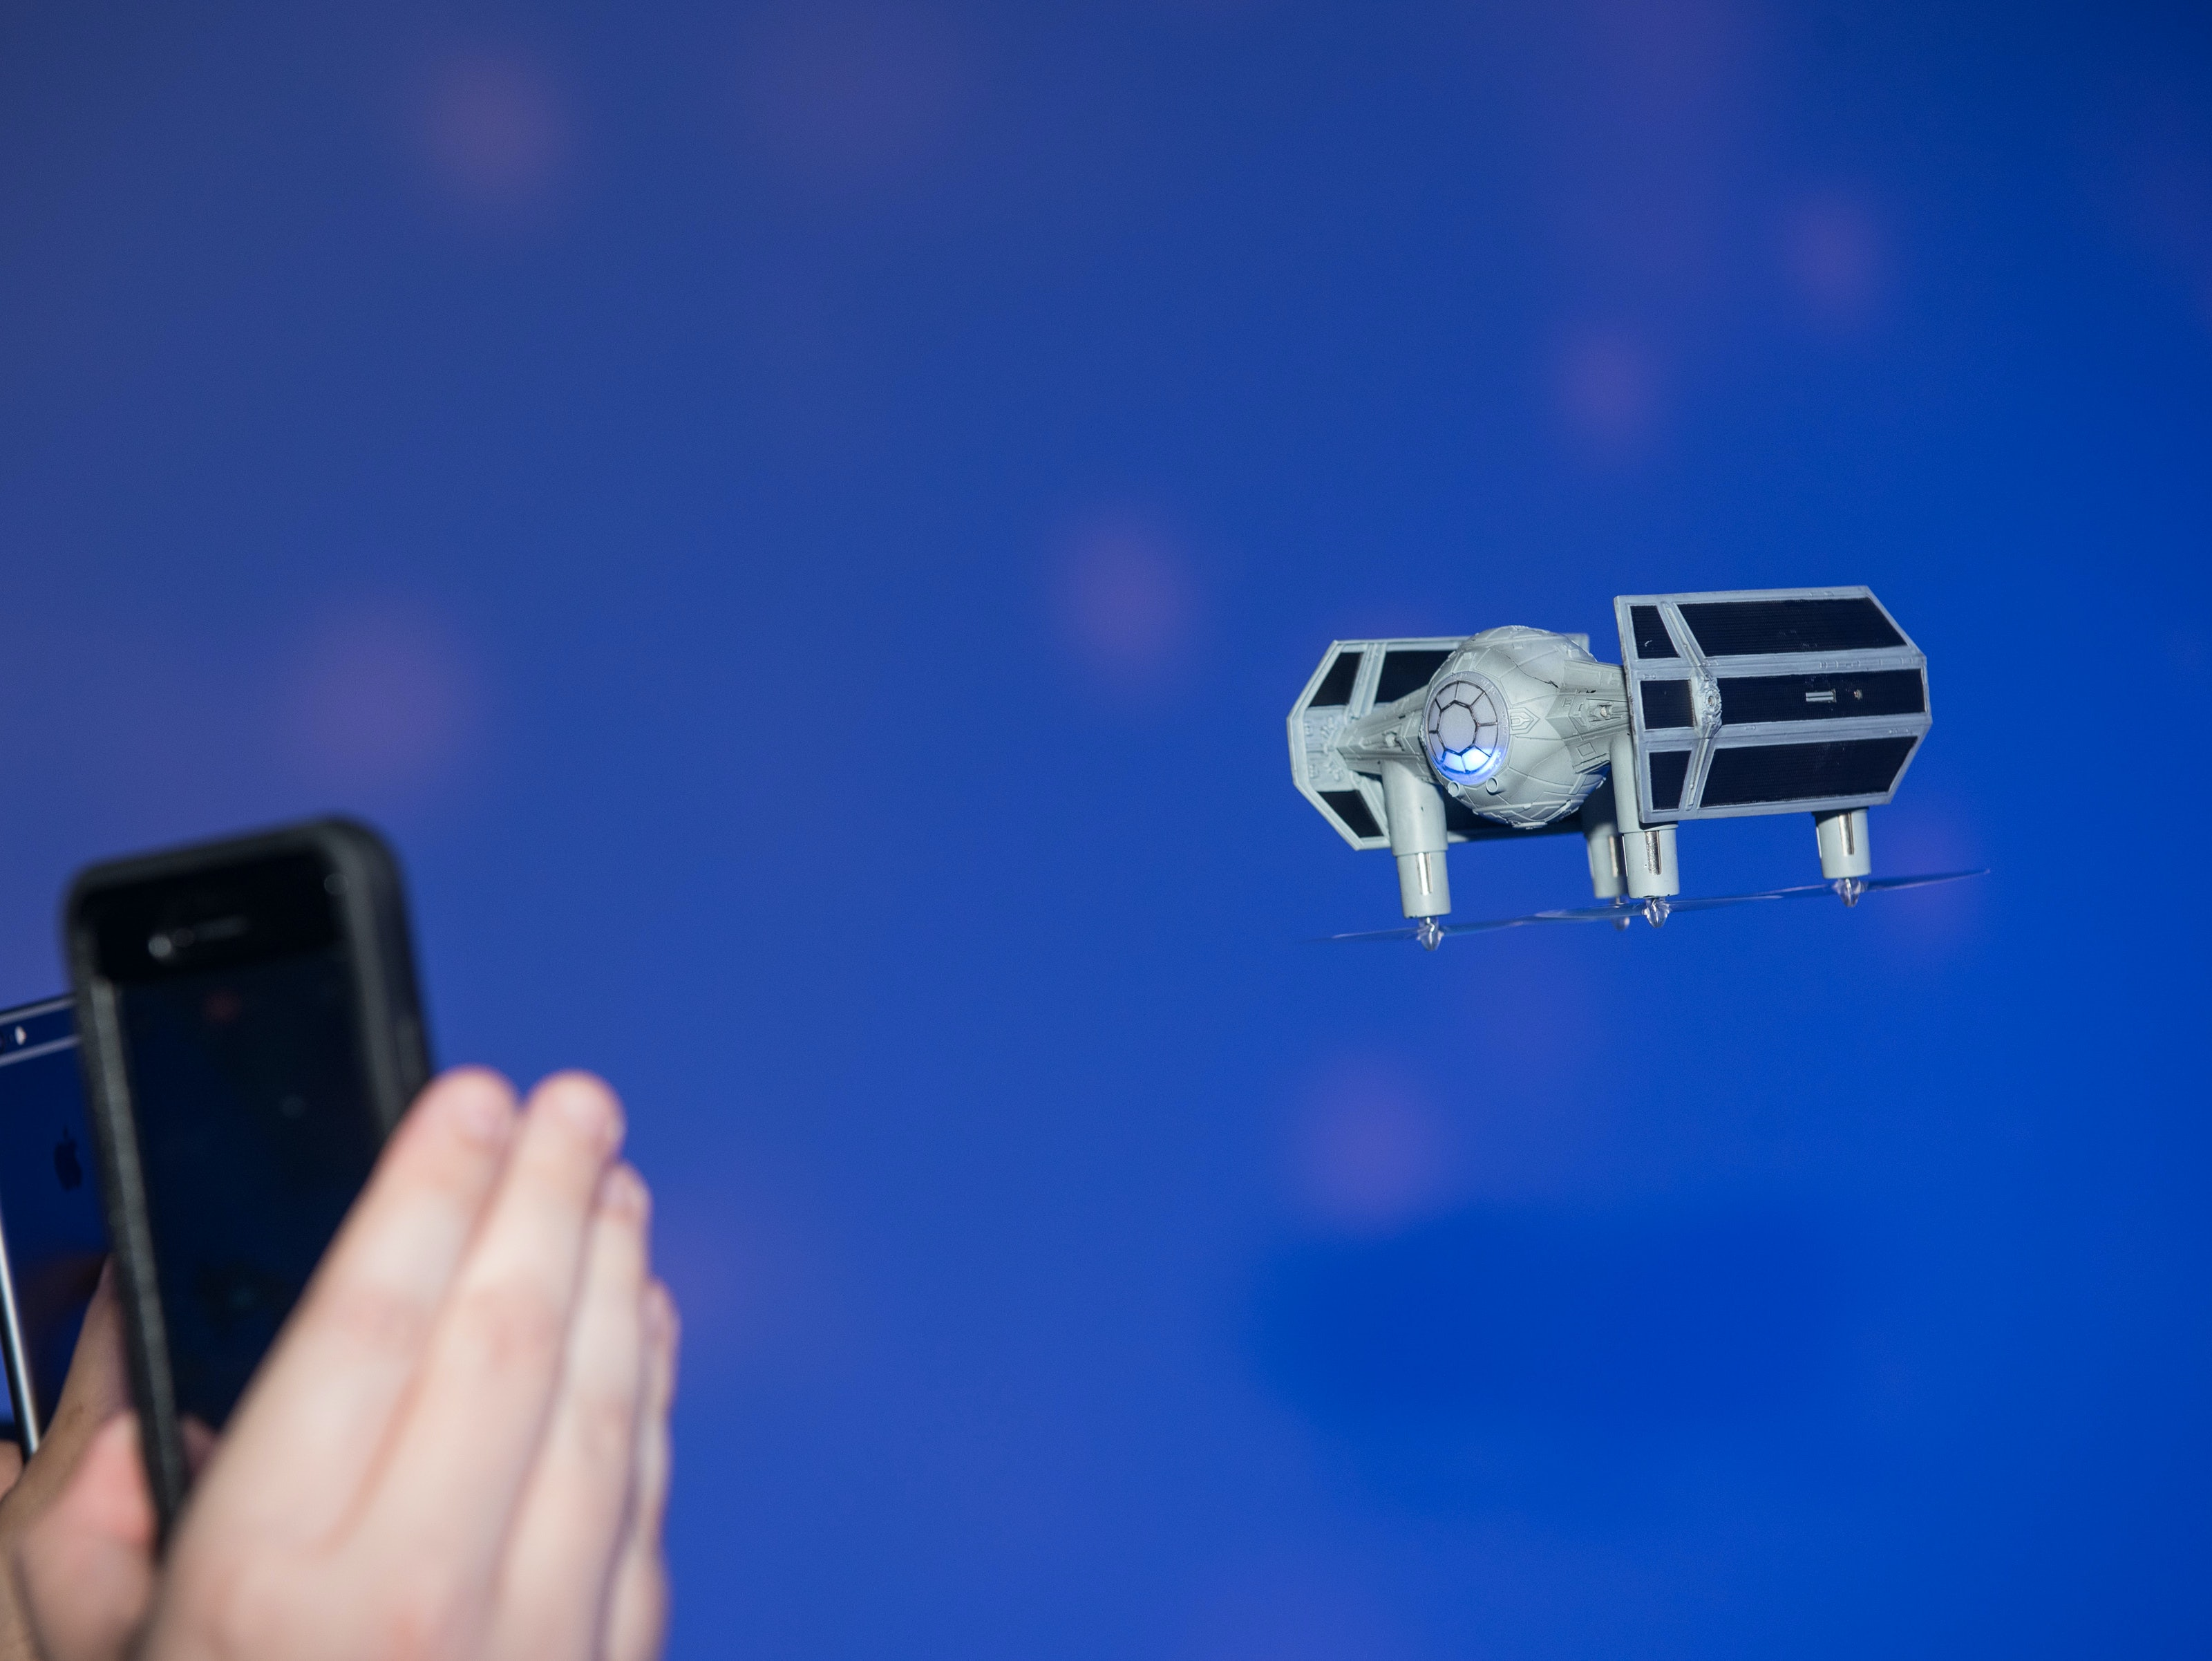 'Star Wars' Drones Are Making Your Childhood Dreams Come True